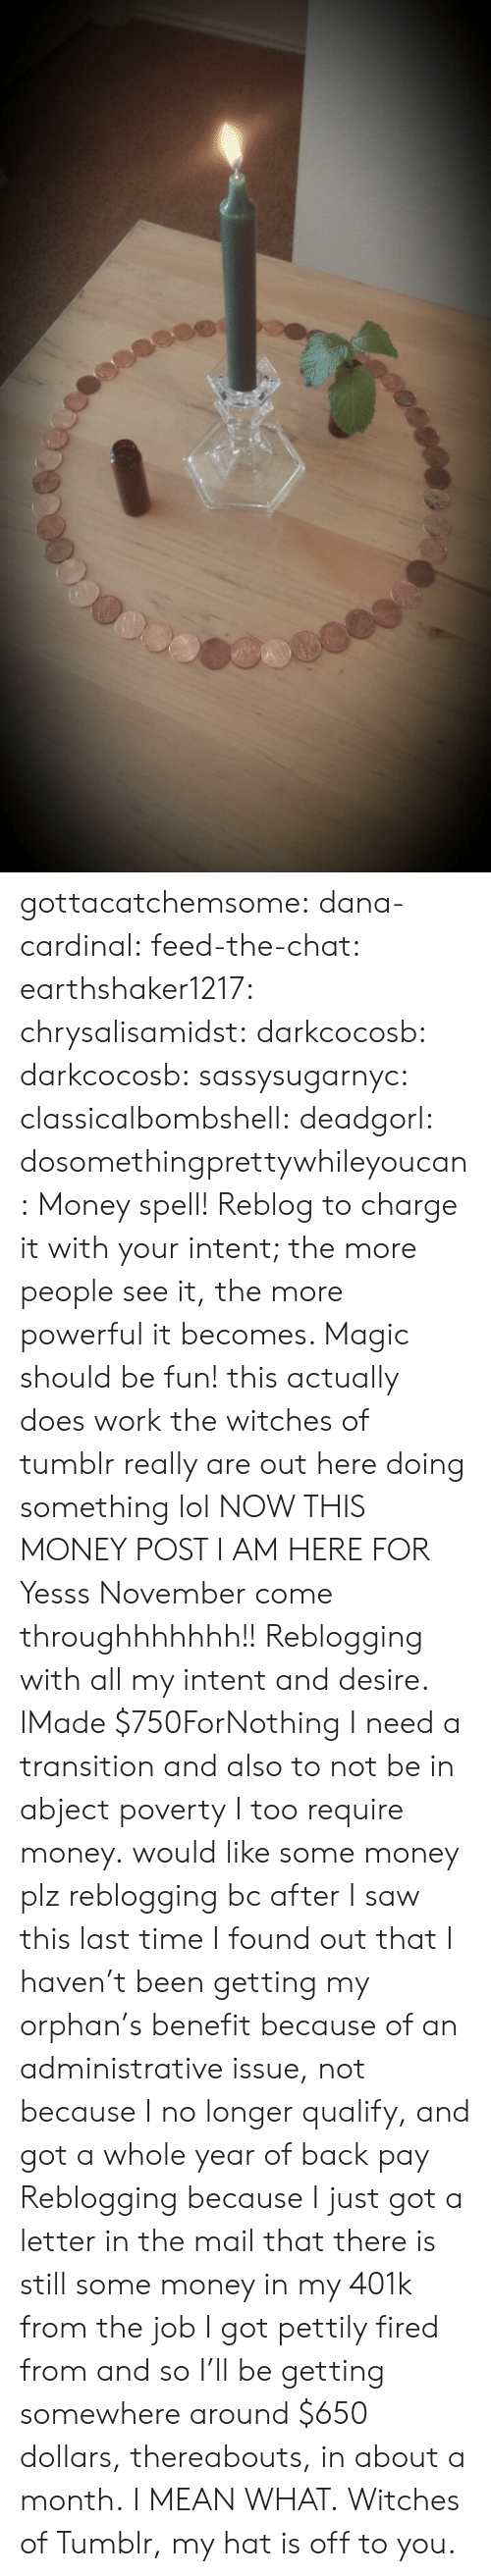 yesss: gottacatchemsome: dana-cardinal:  feed-the-chat:  earthshaker1217:  chrysalisamidst:  darkcocosb:  darkcocosb:  sassysugarnyc:  classicalbombshell:  deadgorl:  dosomethingprettywhileyoucan:  Money spell! Reblog to charge it with your intent; the more people see it, the more powerful it becomes. Magic should be fun!  this actually does work the witches of tumblr really are out here doing something lol  NOW THIS MONEY POST I AM HERE FOR  Yesss November come throughhhhhhh!!  Reblogging with all my intent and desire.  IMade $750ForNothing  I need a transition and also to not be in abject poverty  I too require money.  would like some money plz  reblogging bc after I saw this last time I found out that I haven't been getting my orphan's benefit because of an administrative issue, not because I no longer qualify, and got a whole year of back pay  Reblogging because I just got a letter in the mail that there is still some money in my 401k from the job I got pettily fired from and so I'll be getting somewhere around $650 dollars, thereabouts, in about a month. I MEAN WHAT. Witches of Tumblr, my hat is off to you.